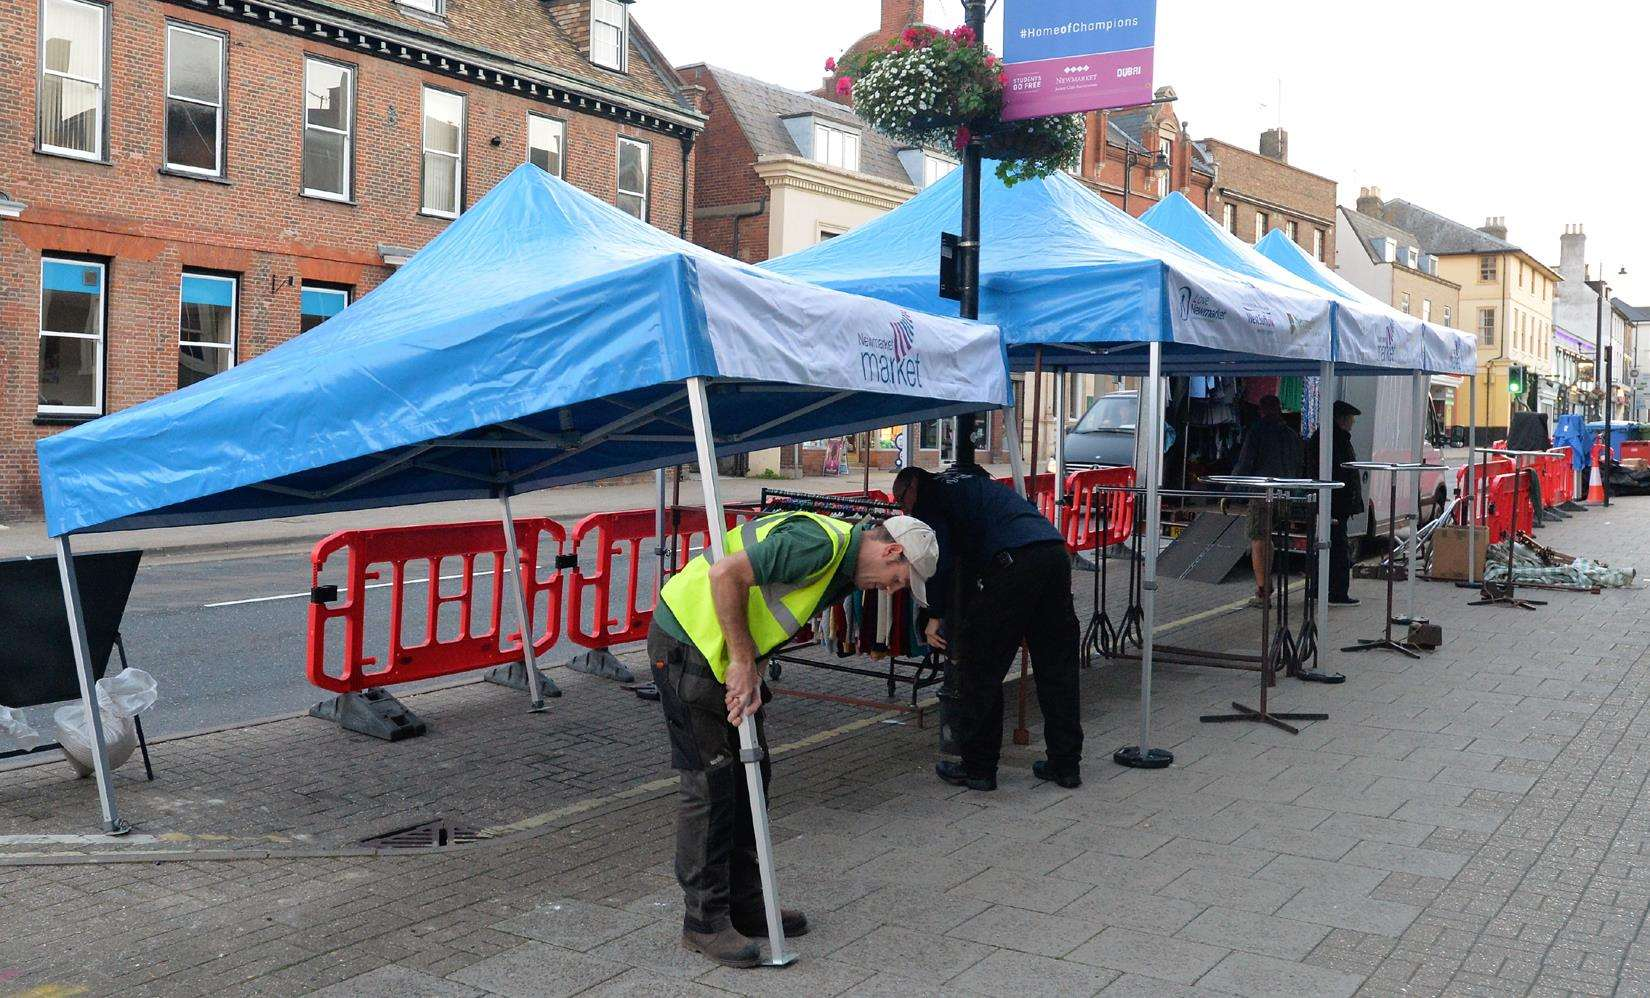 Staff set up new coverings for market traders (4082295)